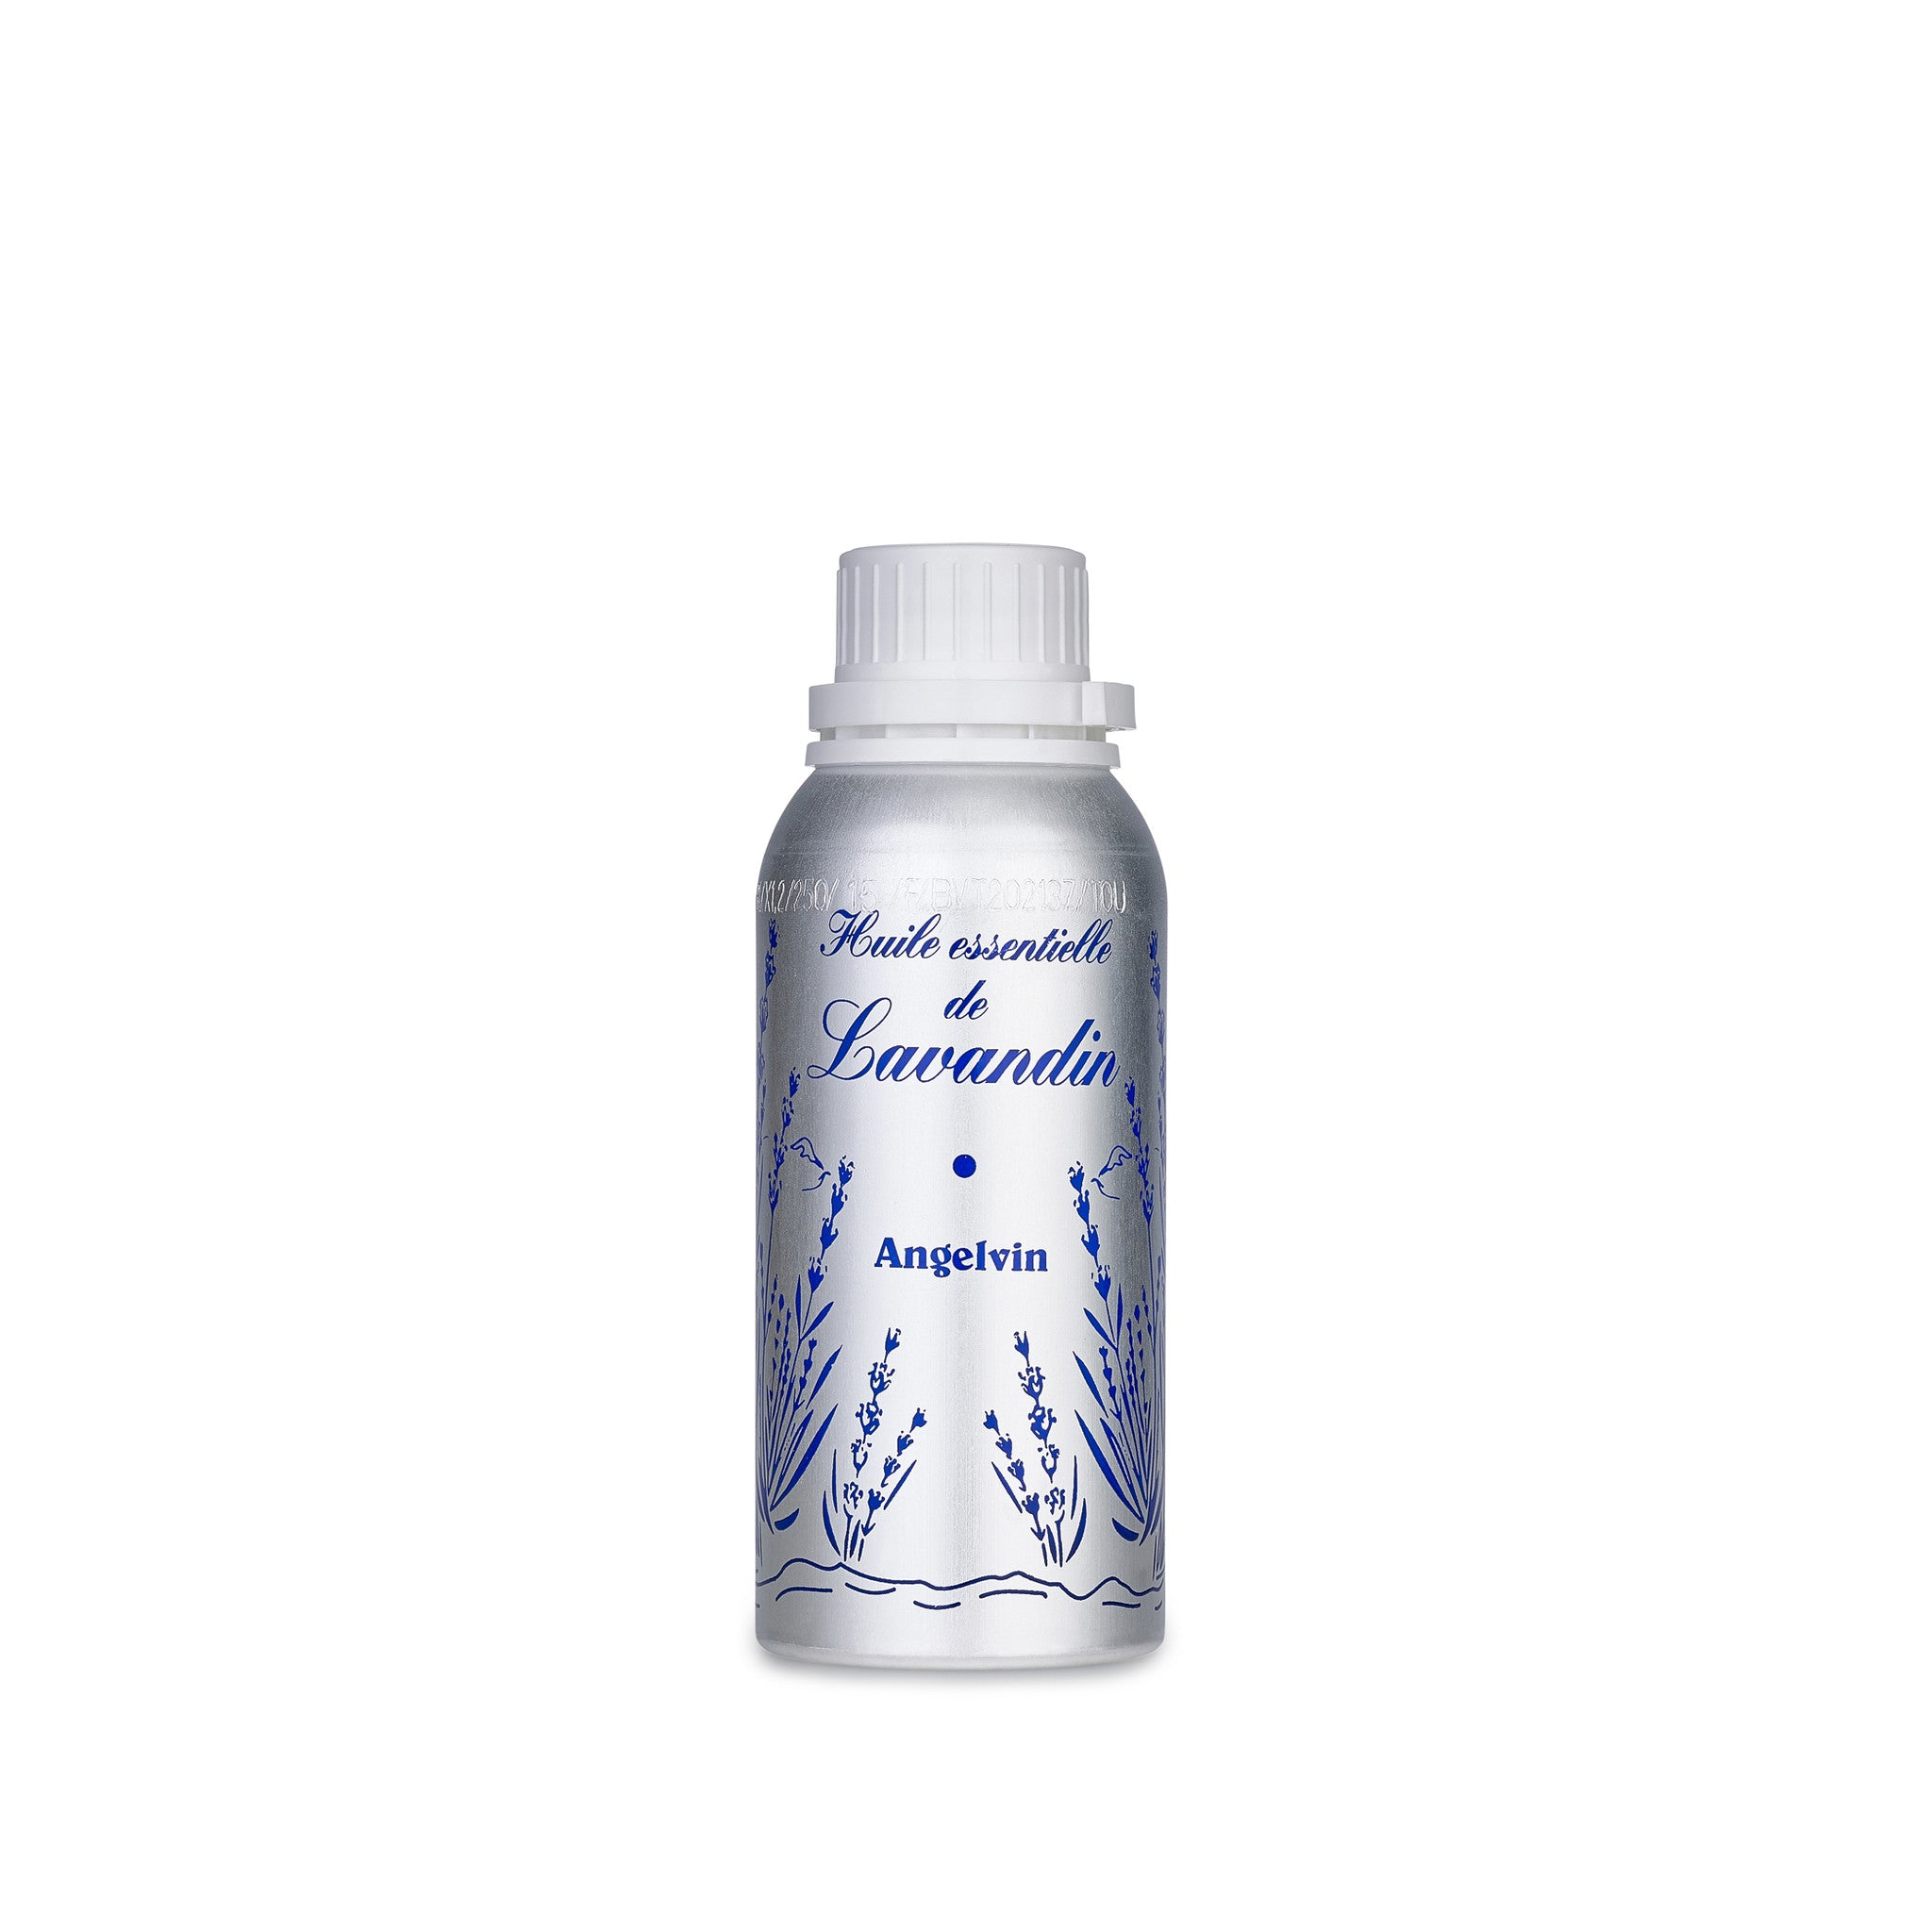 Lavandin Essence Bottle, 300ml